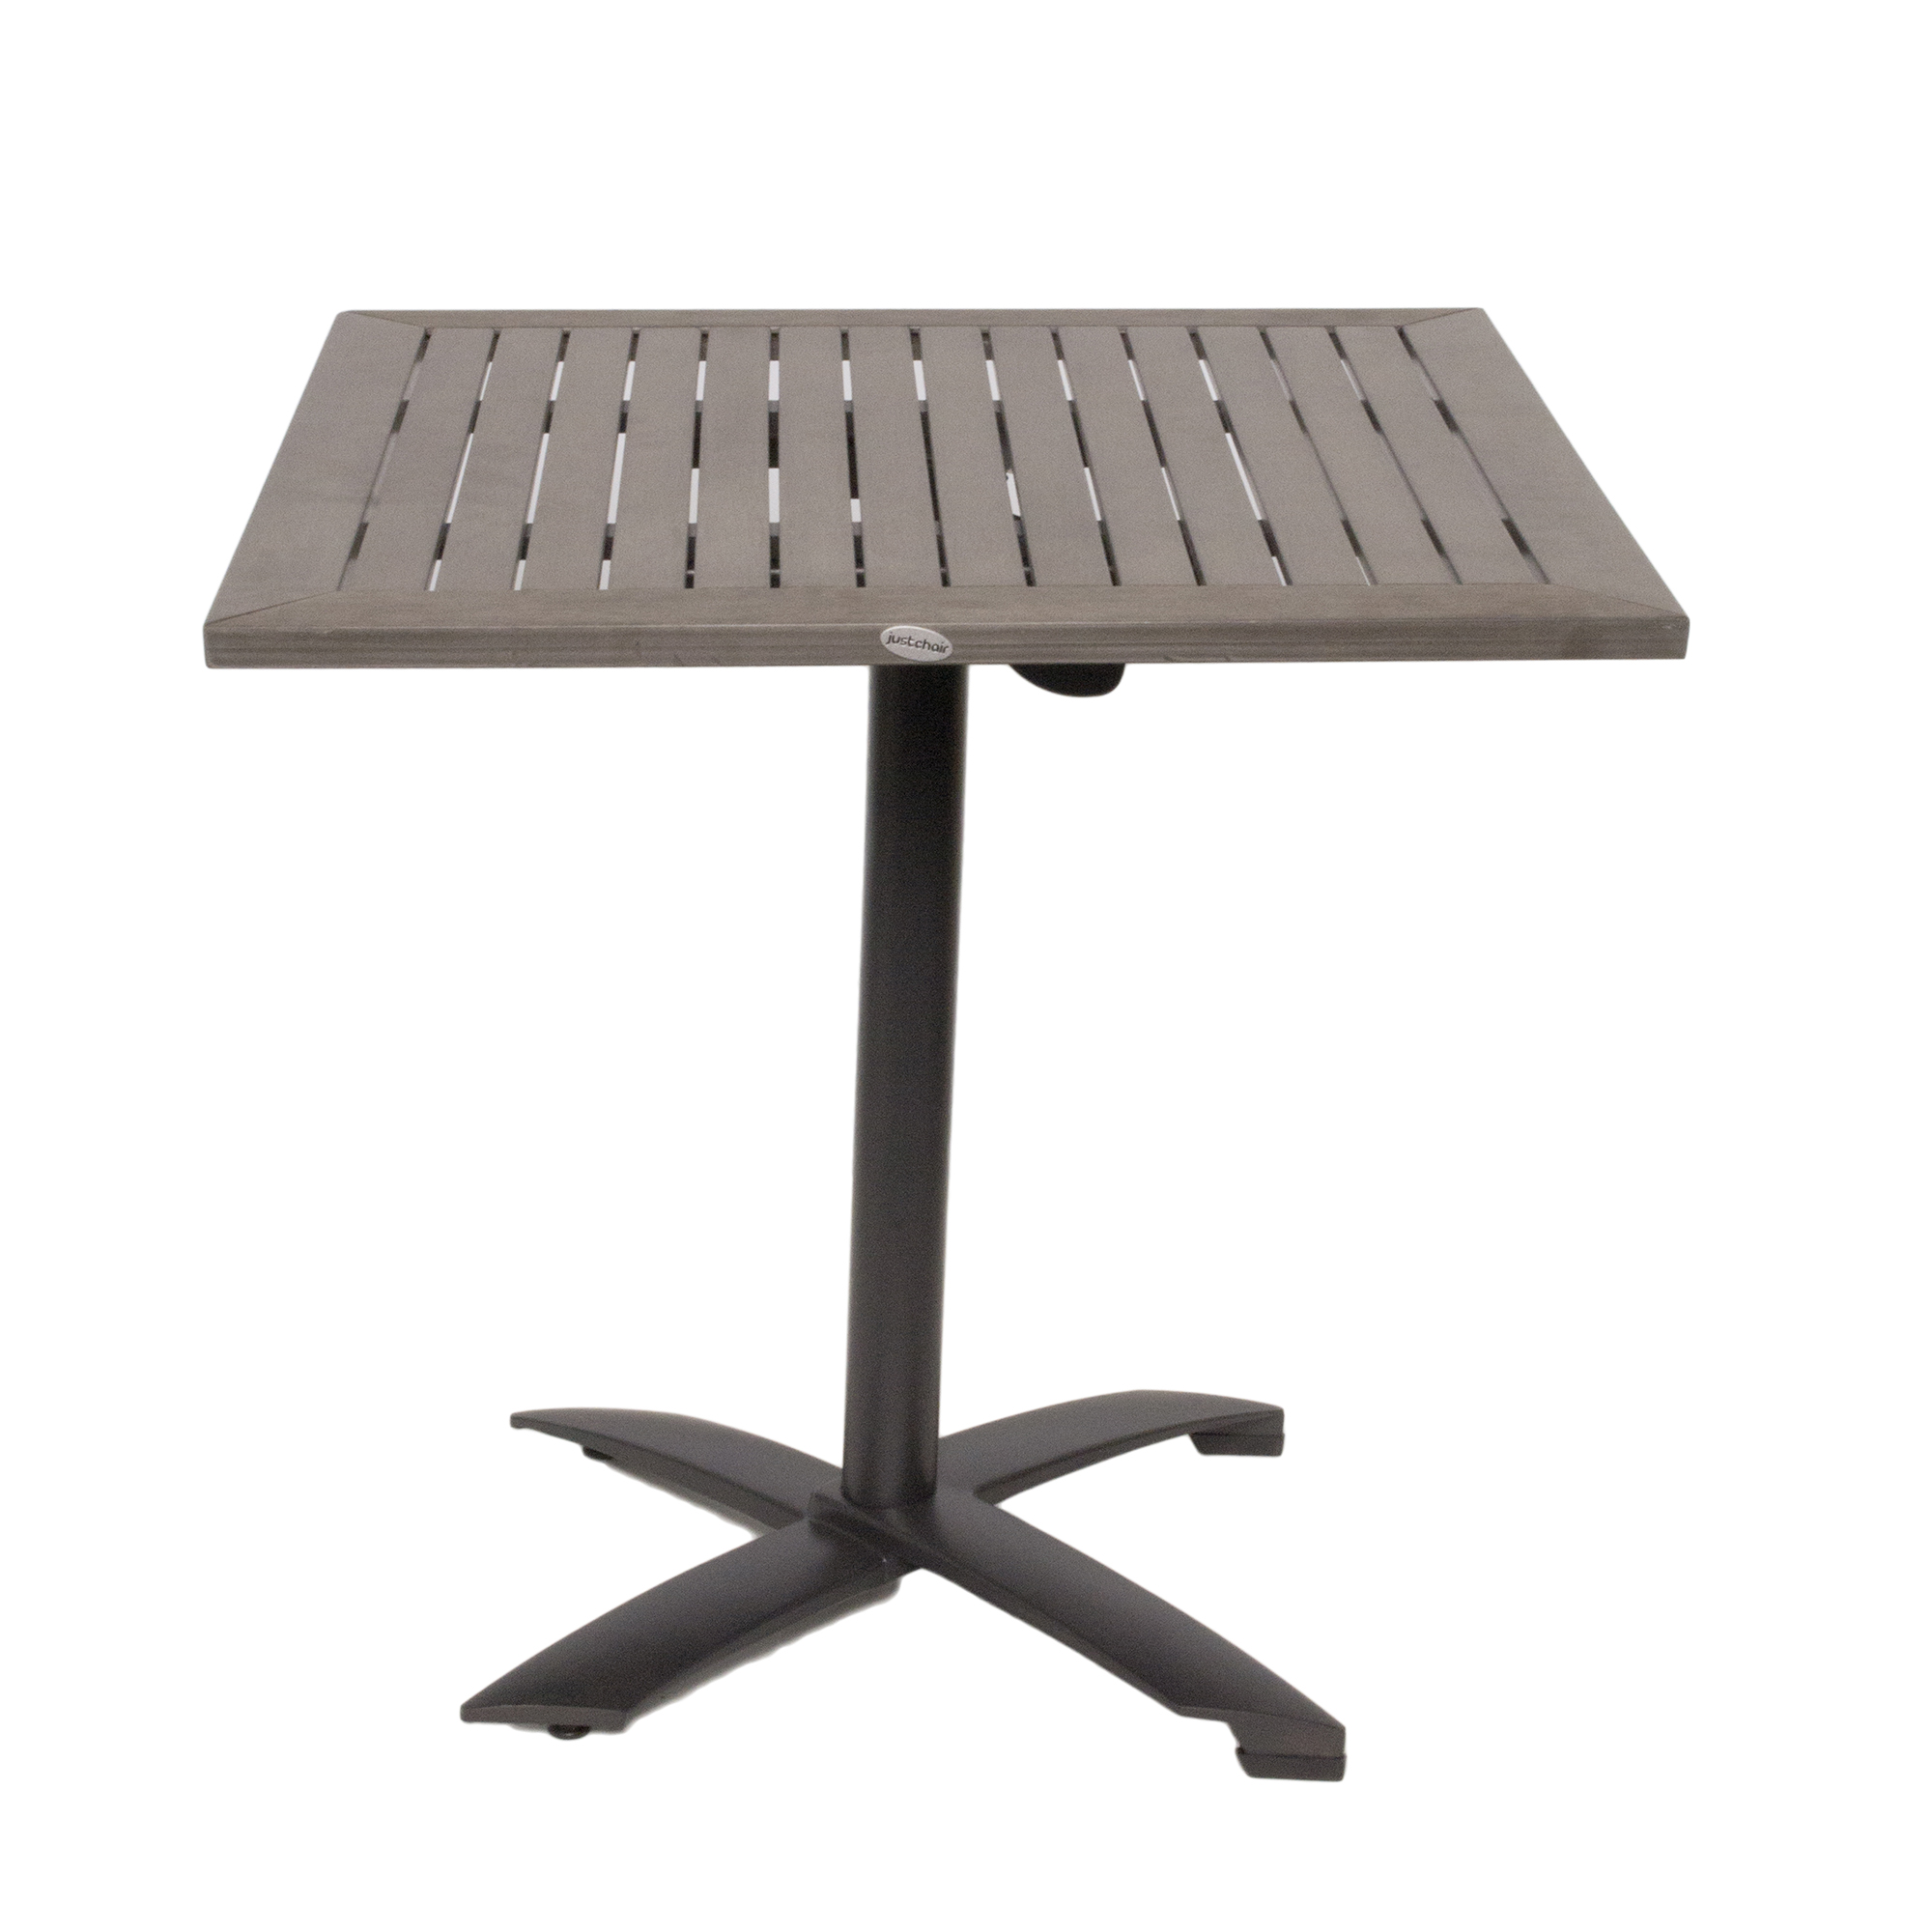 JustChair Manufacturing PW801TT-3030 table, outdoor